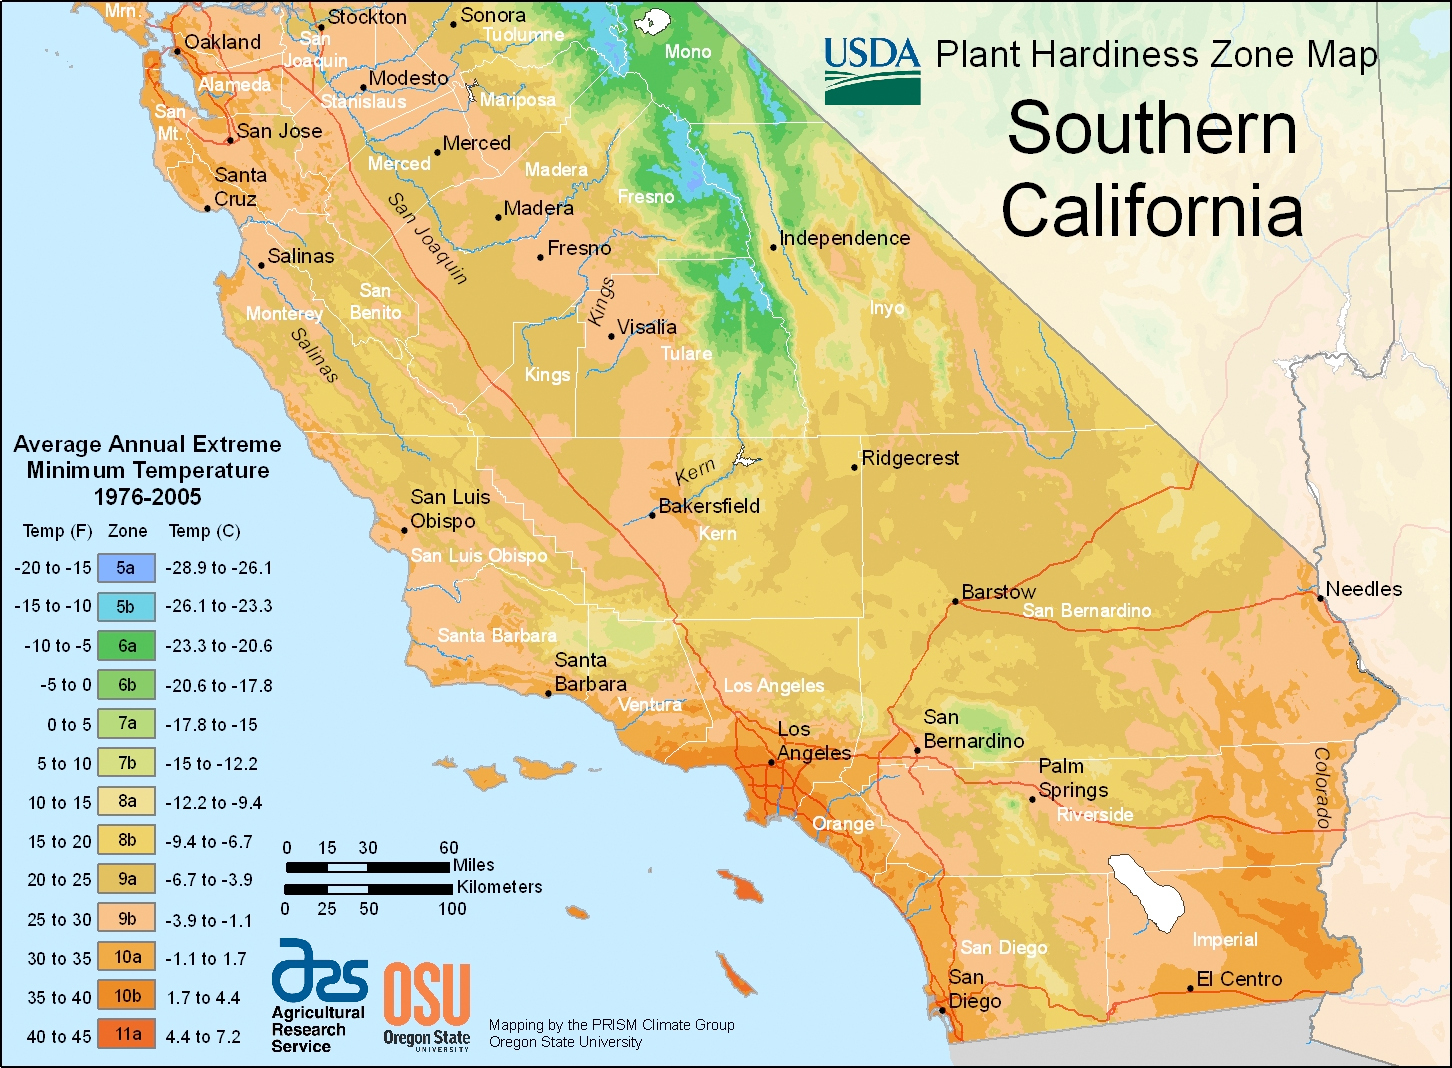 Zone Maps Maps Of California Climate Zone Map California Google Maps - California Zone Map